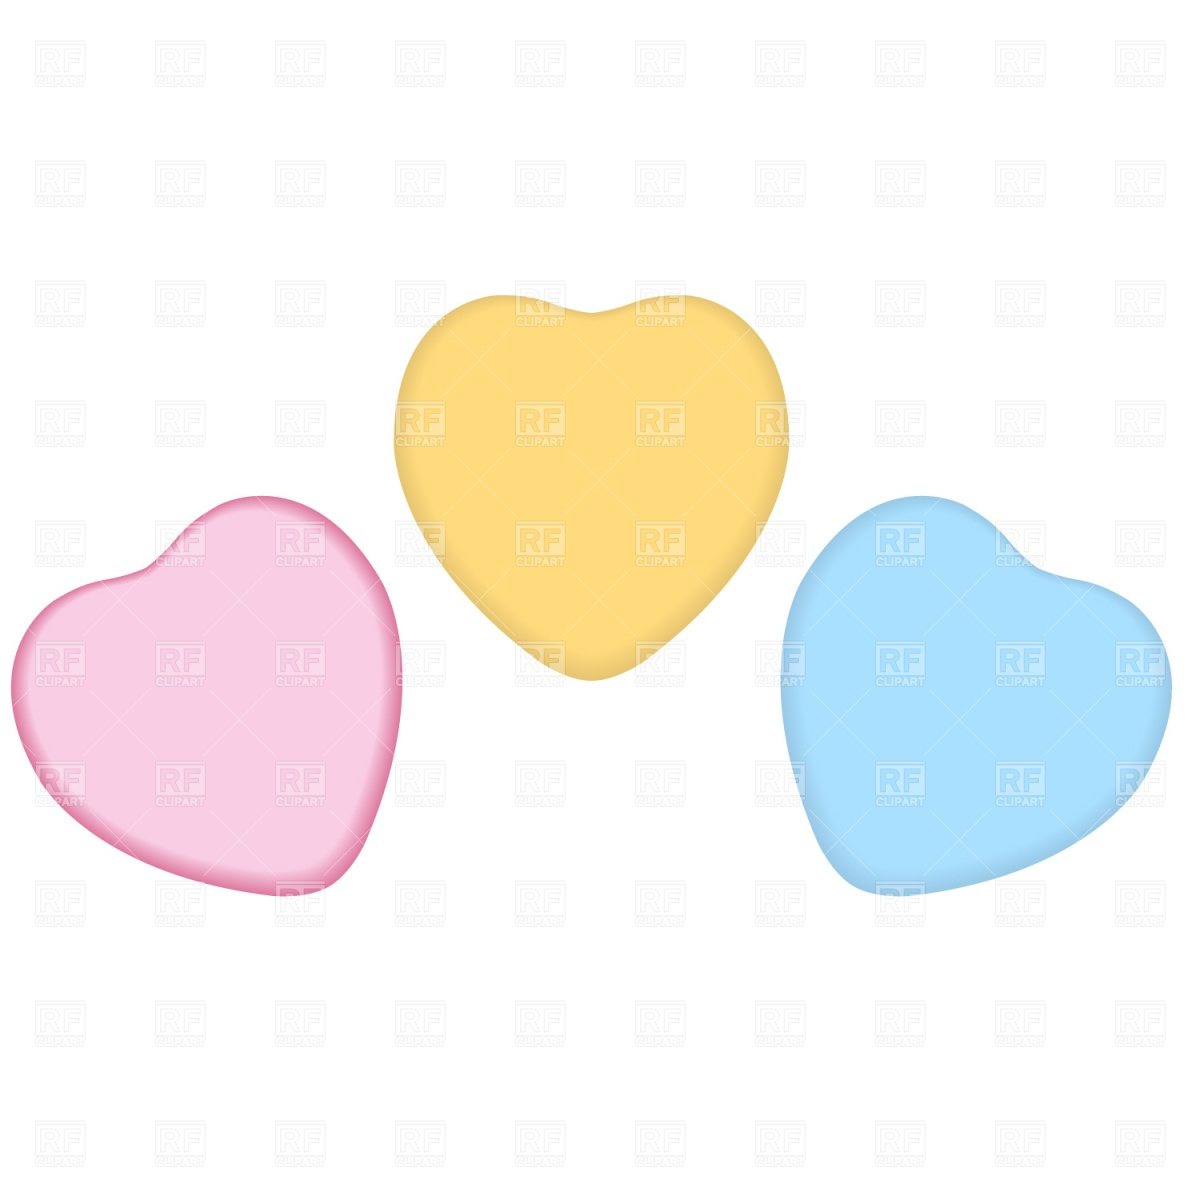 Candy Heart Clipart Free.